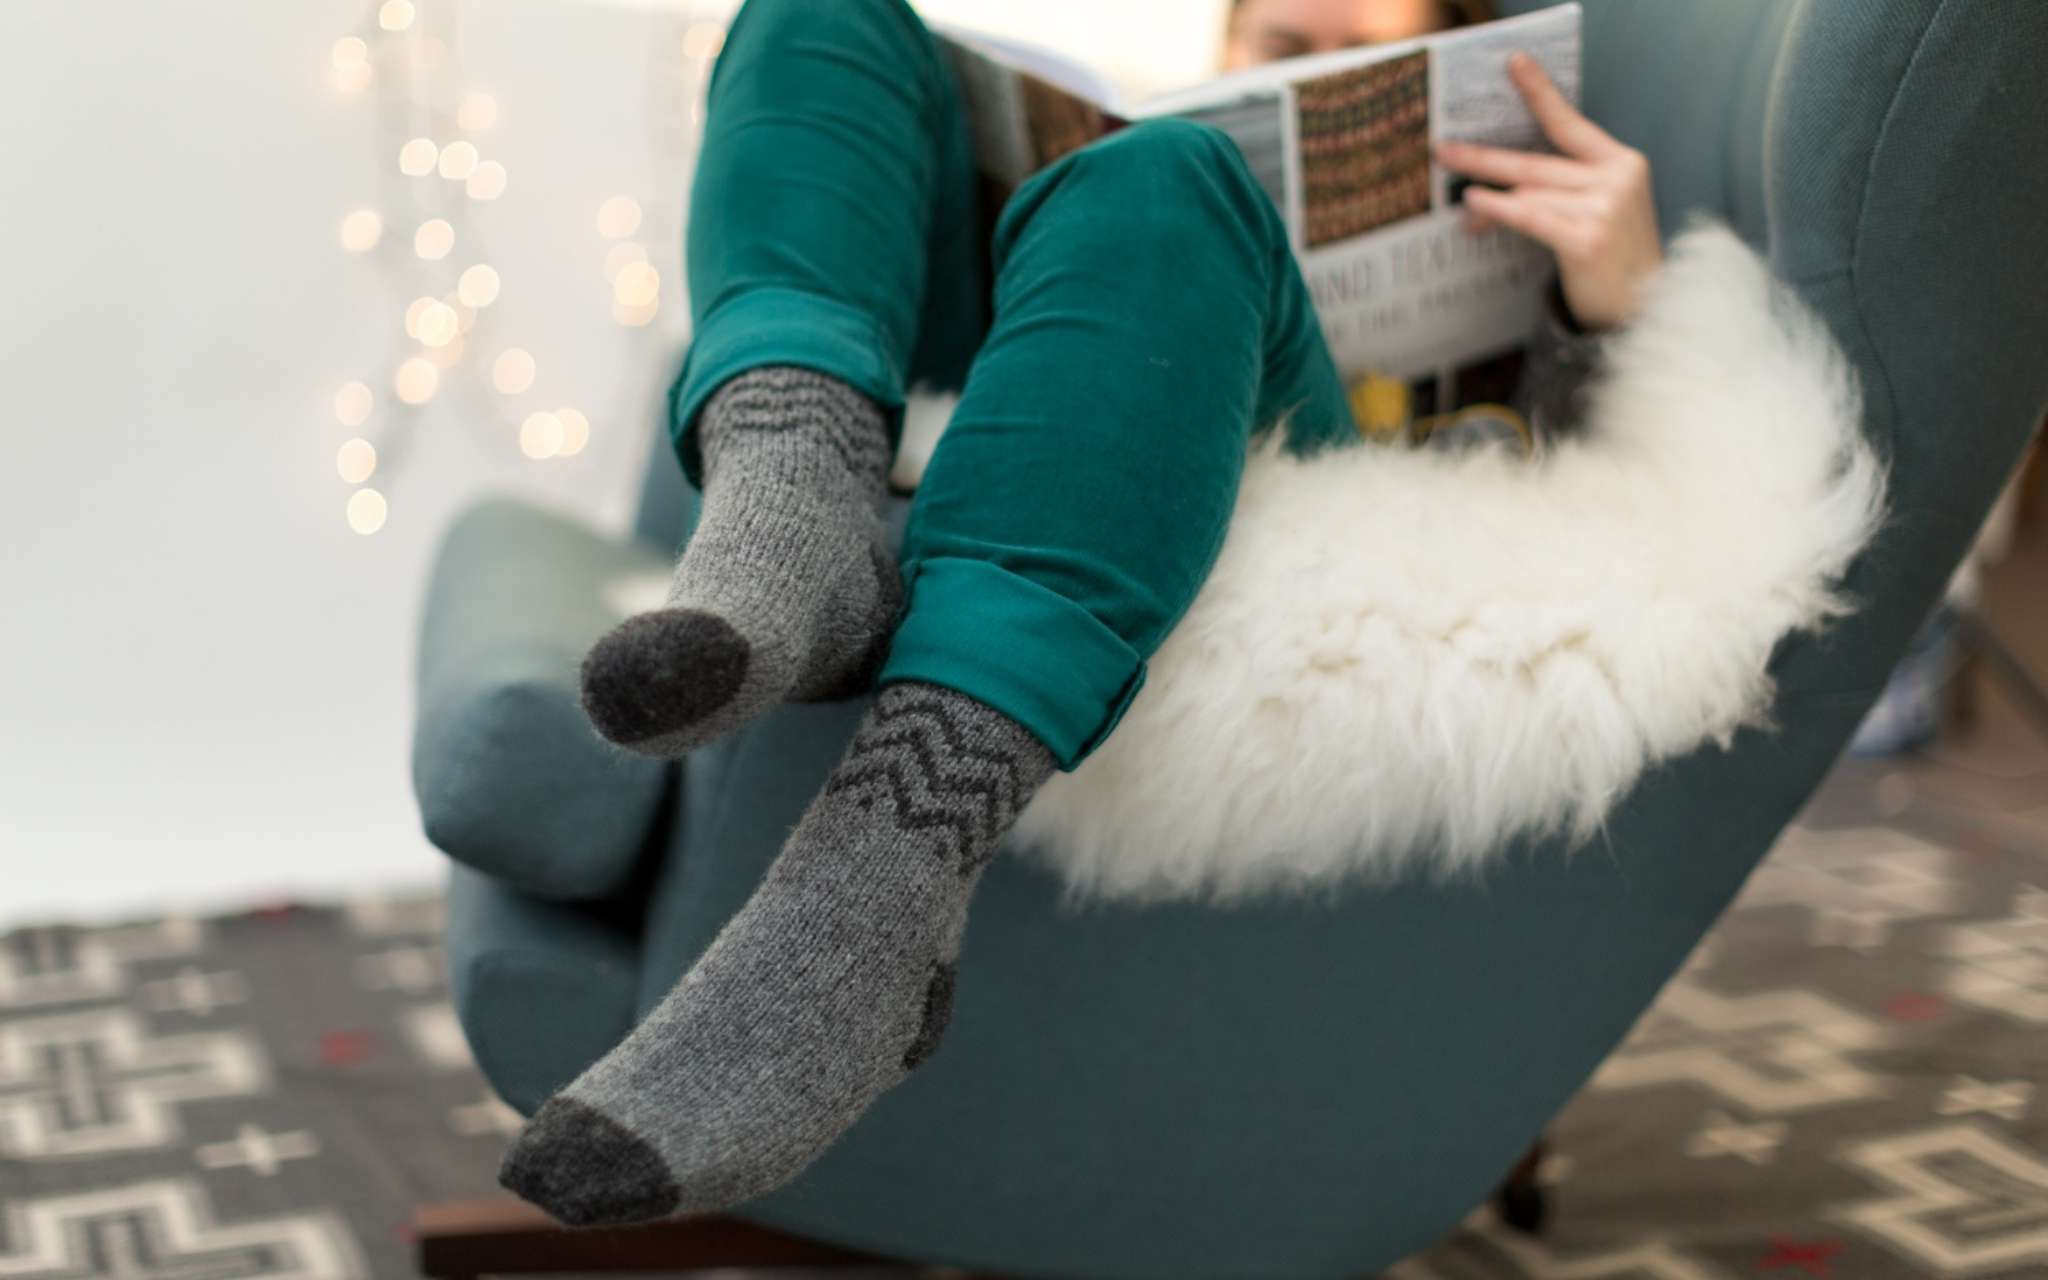 A model wears grey colourwork socks and teal trousers, while snuggled on an armchair holding a book. There are twinkling lights in the background and they sit on a fluffy white blanket.